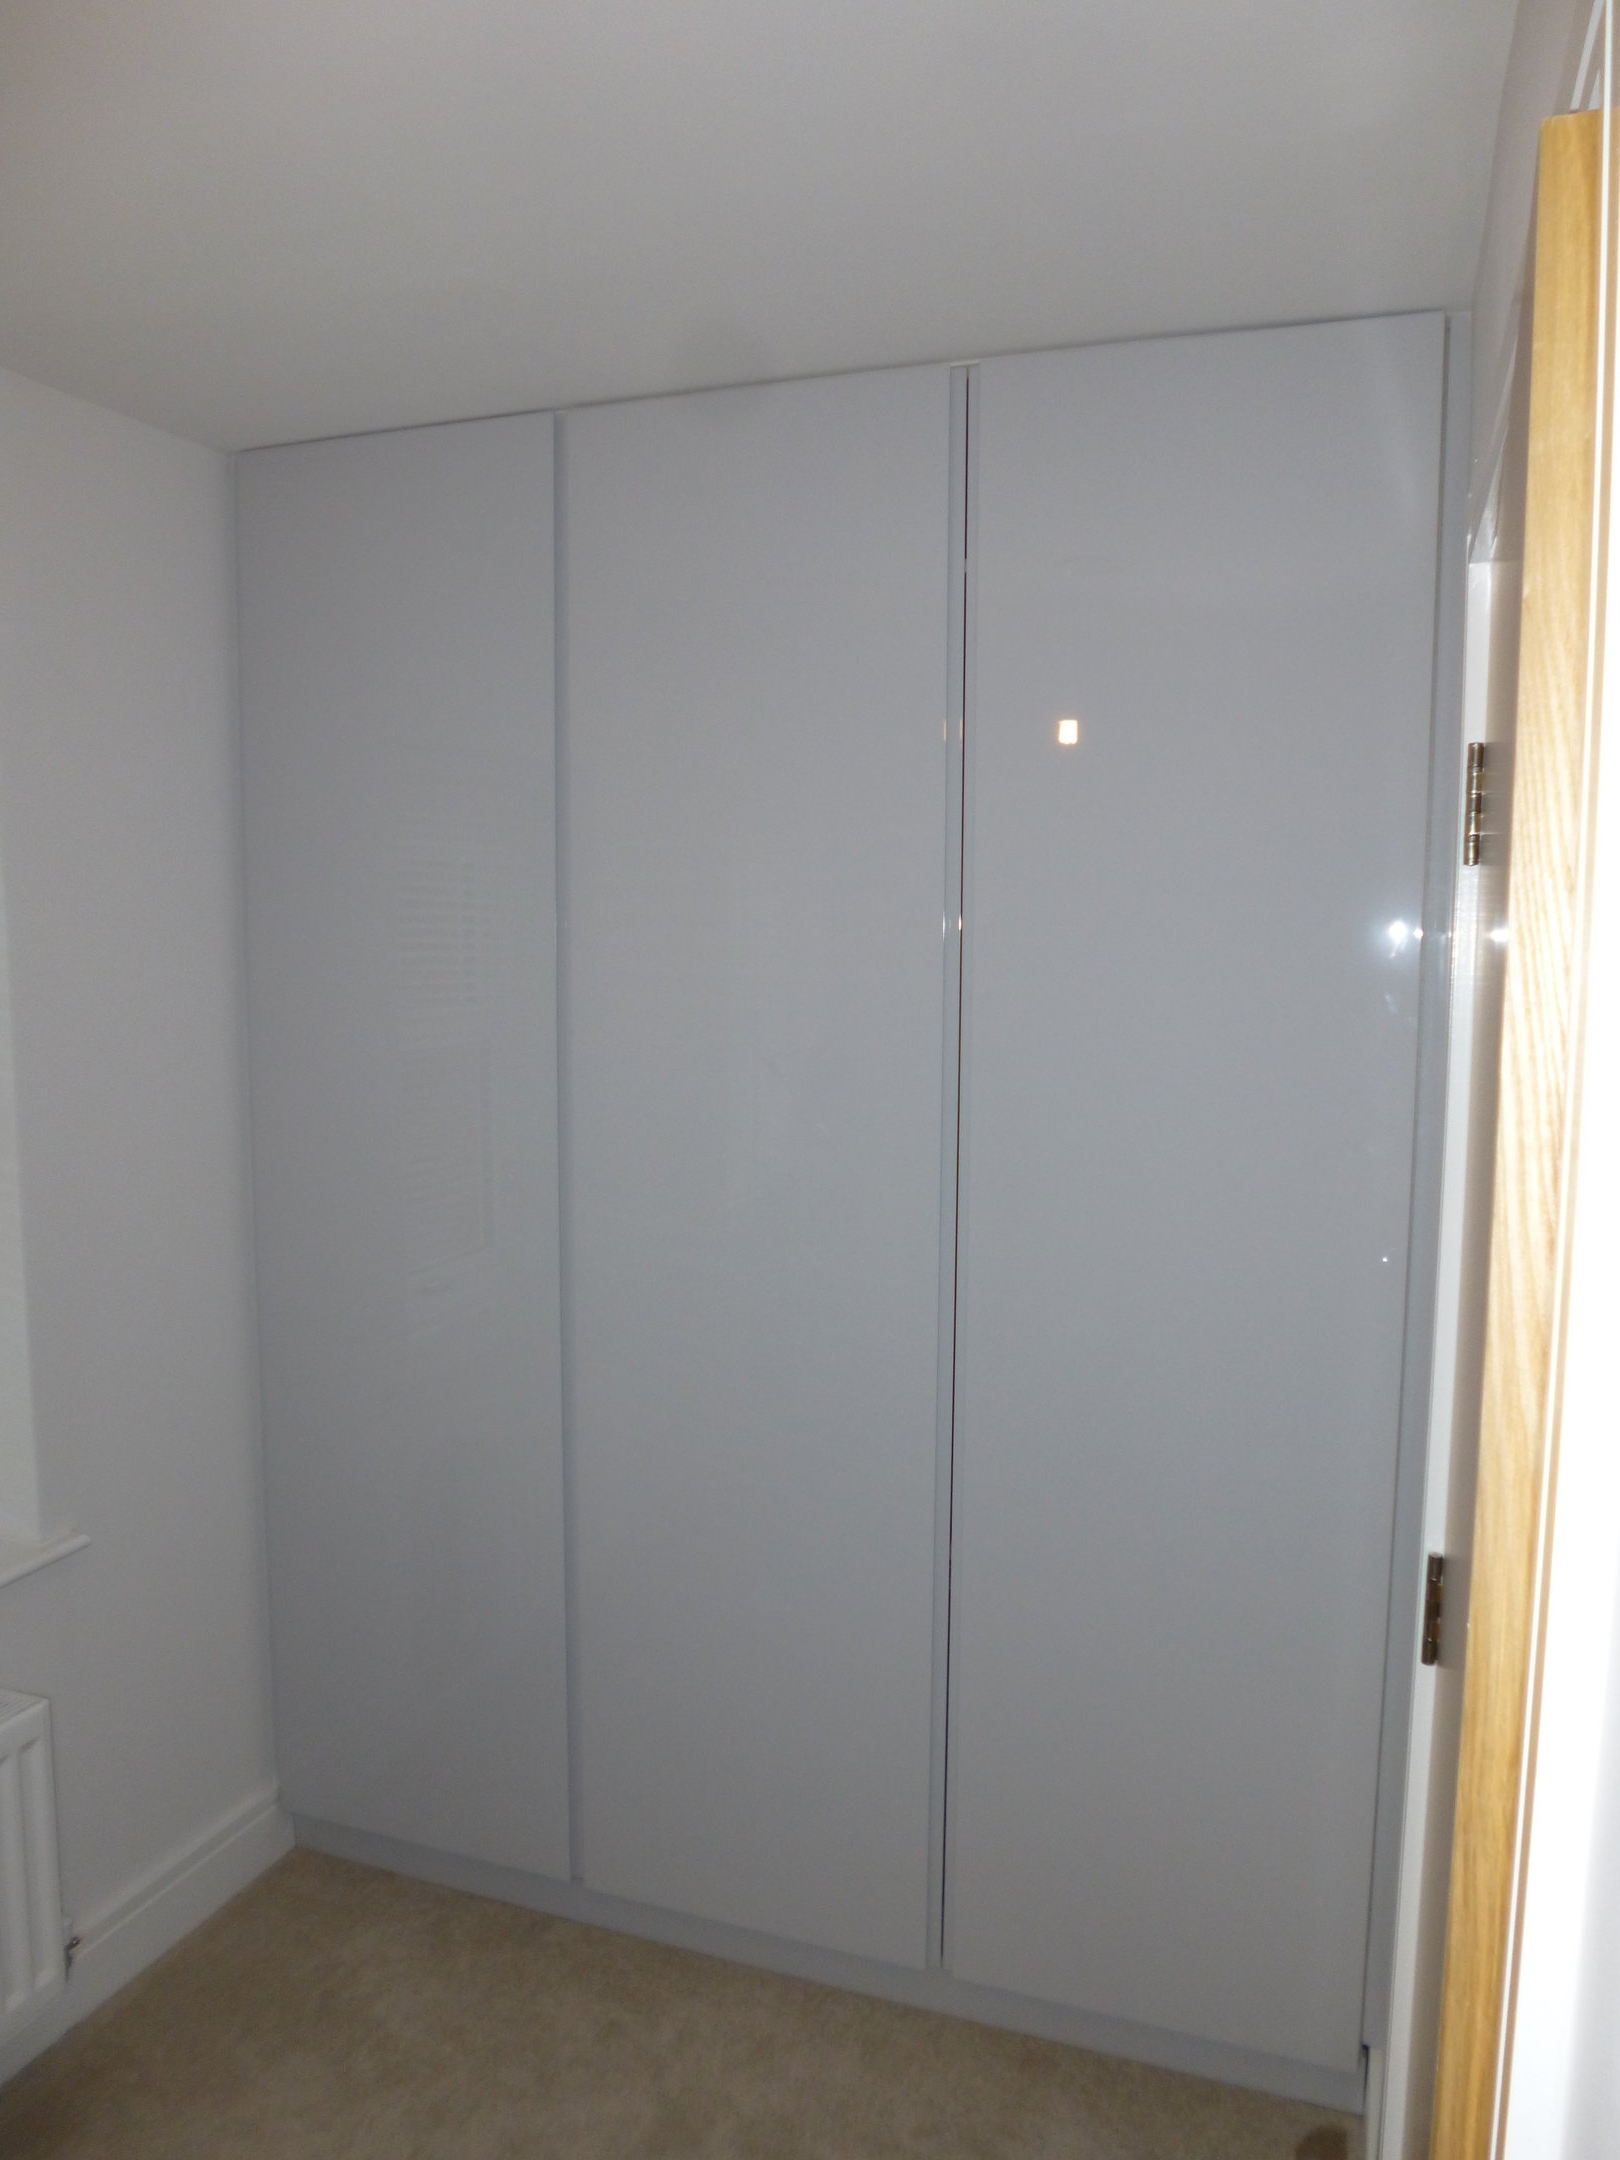 Fashionable High Gloss Doors Wardrobes Throughout Handle Less Hinged Doors Wardrobe Made From Spray Painted High (View 8 of 15)